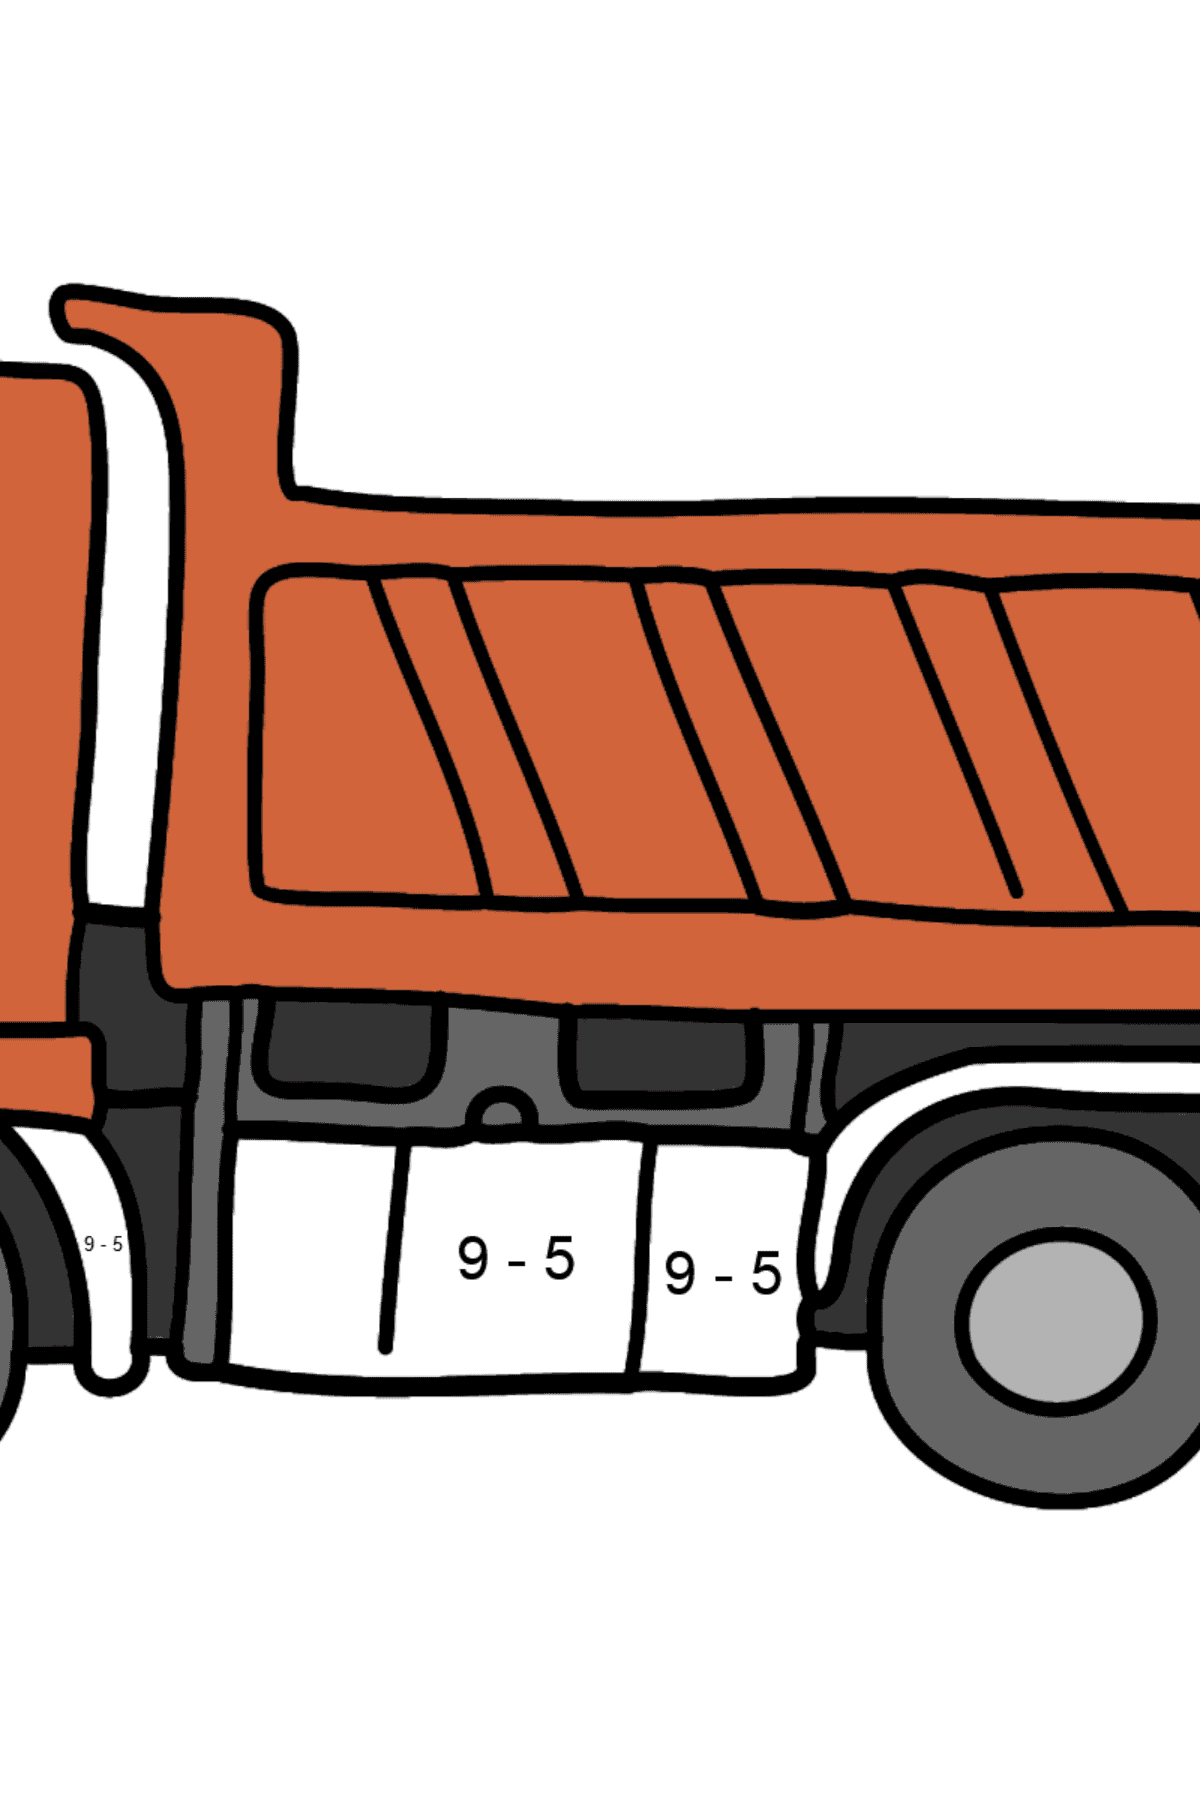 Coloring Page - A Dump Truck - Math Coloring - Subtraction for Kids